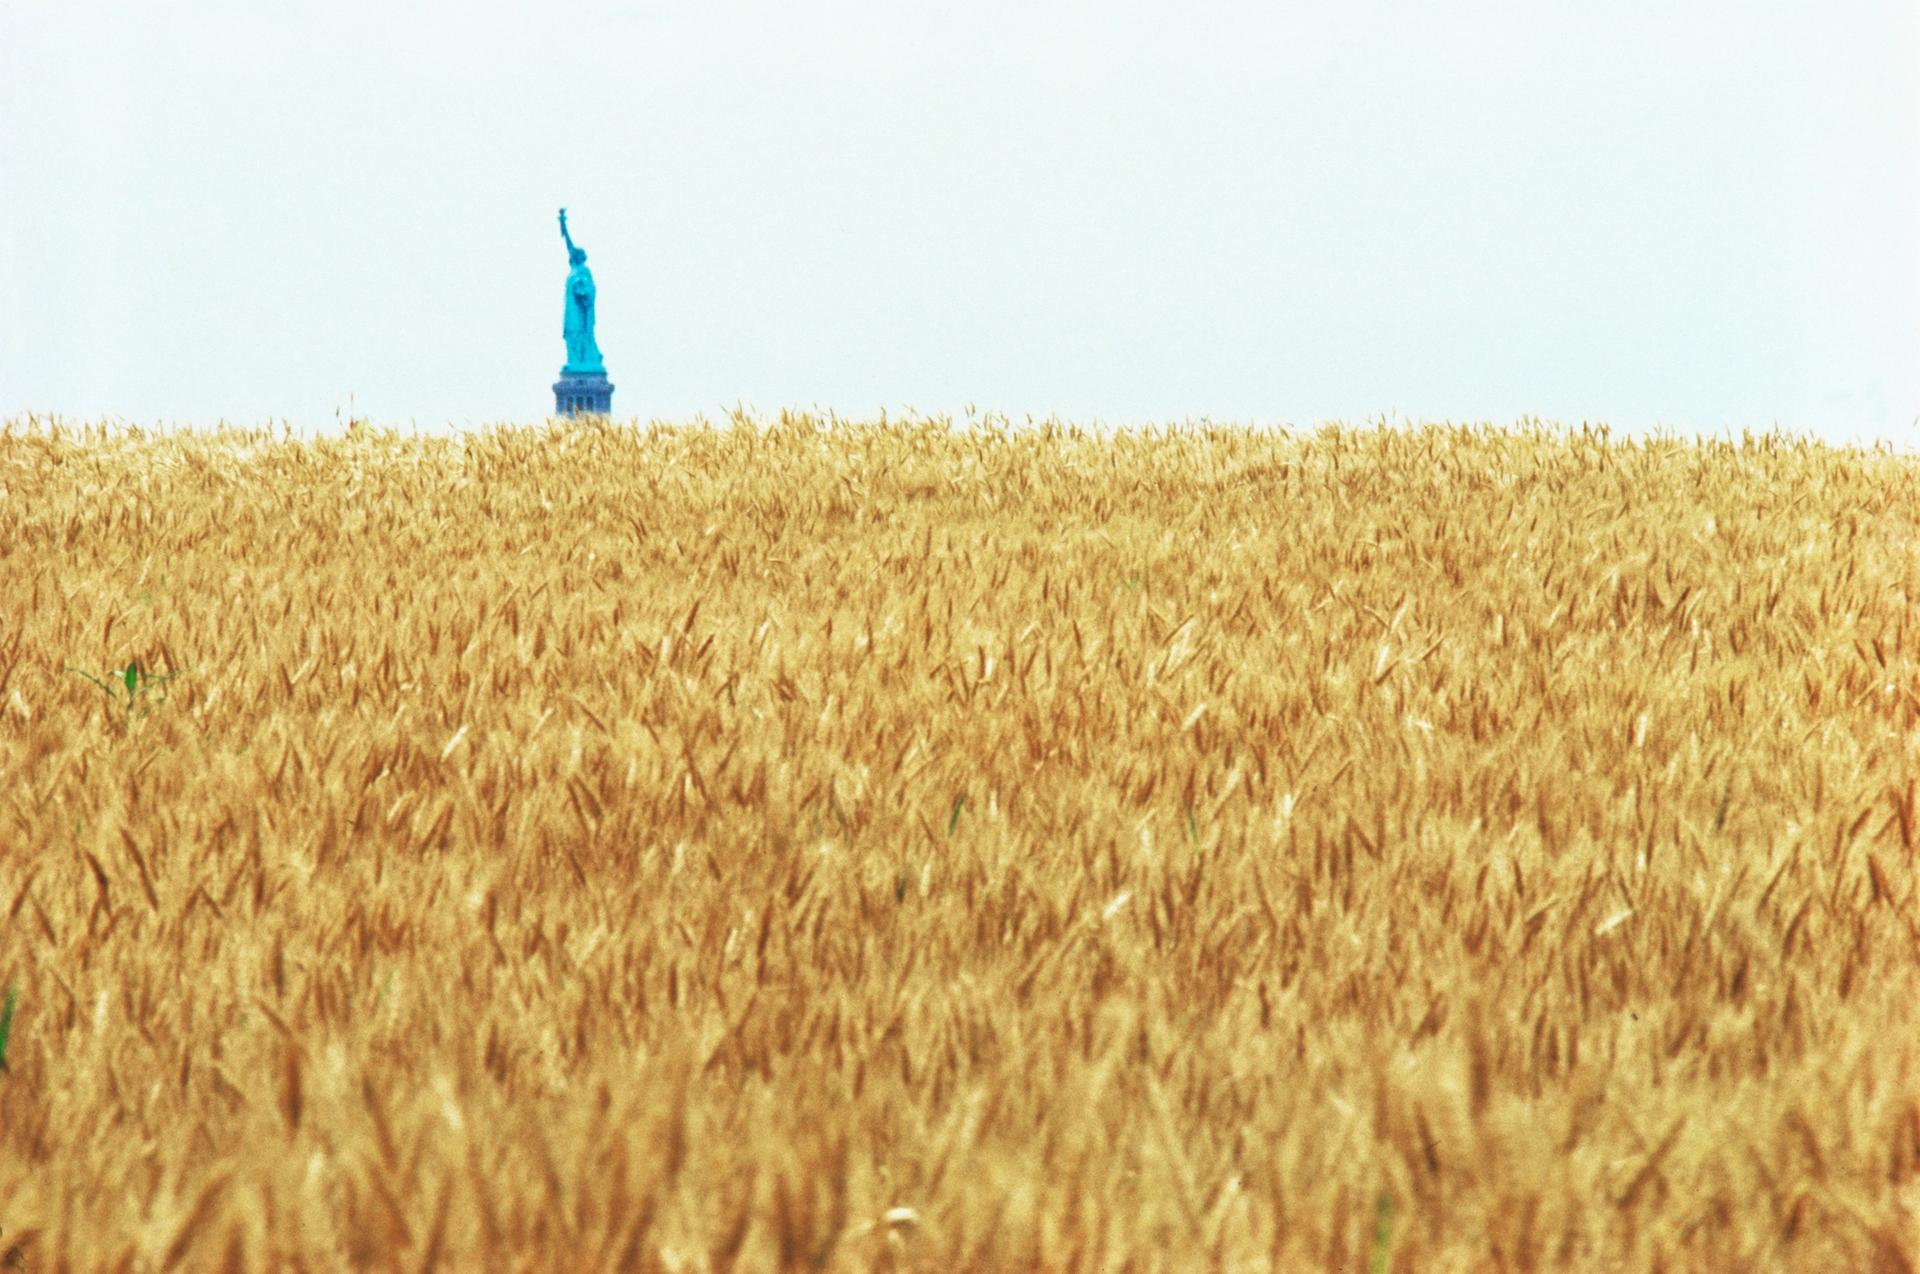 Agnes Denes's Wheatfield—A Confrontation involved the artist planting and harvesting two acres of wheat on the Battery Park landfill in Manhattan during the summer of 1982 Commissioned by Public Art Fund. Courtesy the artist and Leslie Tonkonow Artworks + Projects